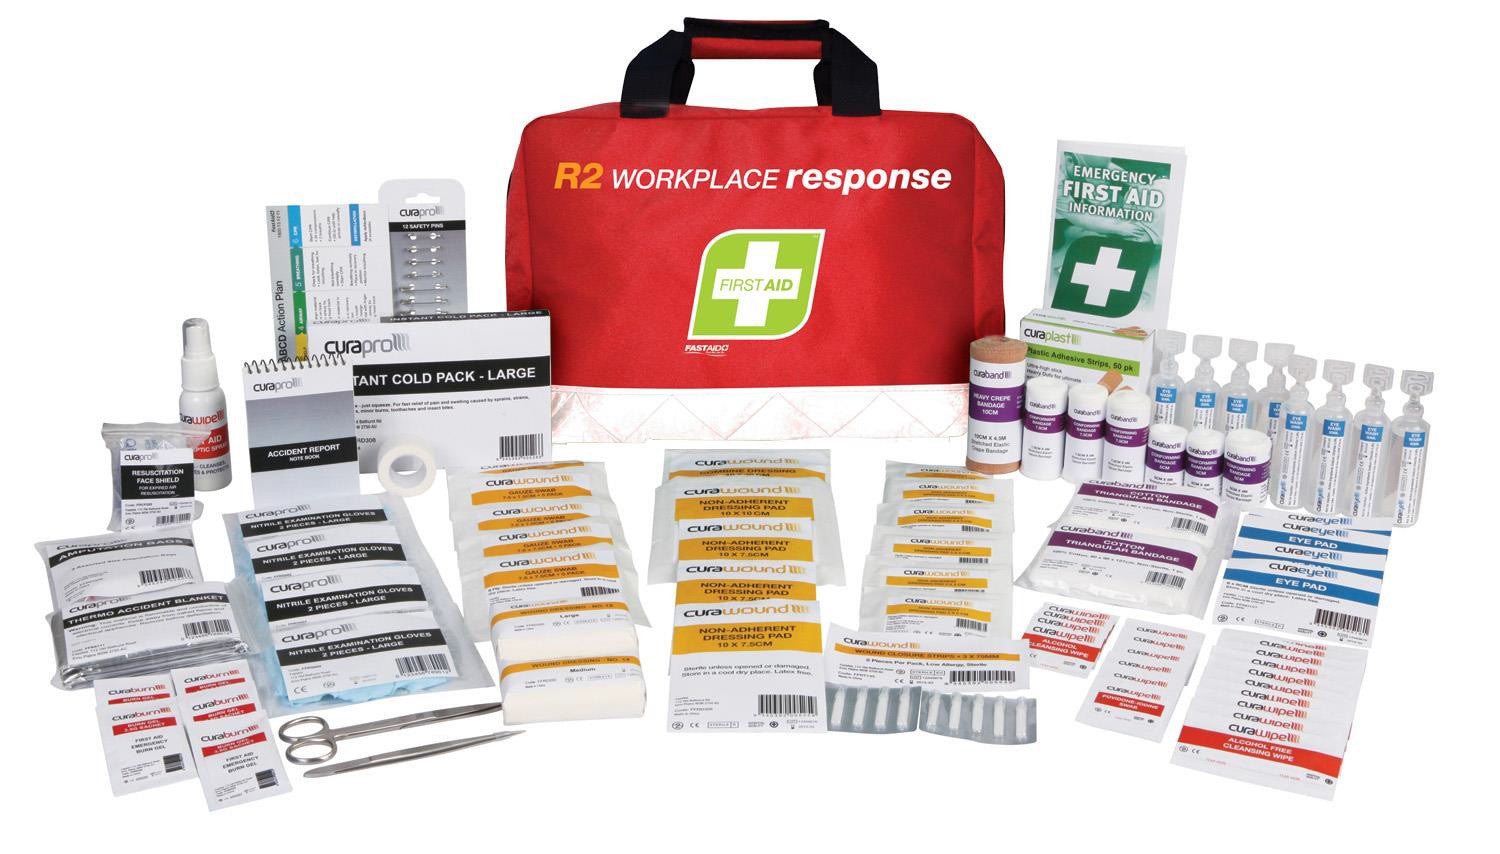 R2 Workplace Response Kit (R2 Low Risk - 1 - 25 People)